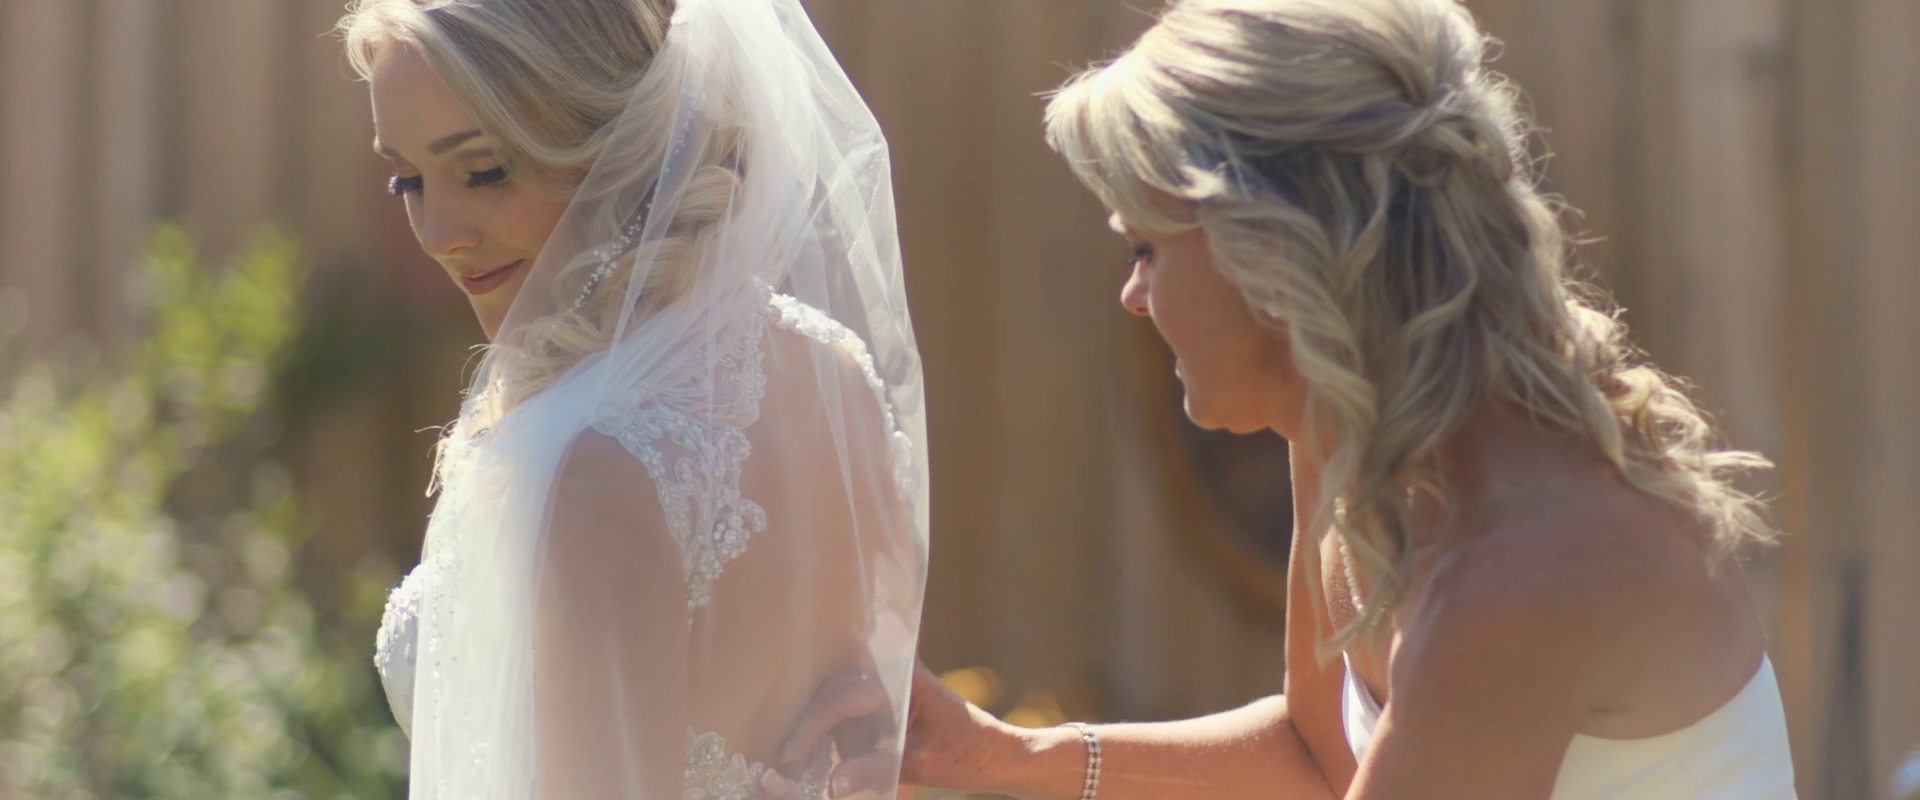 An image of a mother helping her daughter with her wedding dress on the day of her wedding; taken from a Toronto Wedding Video